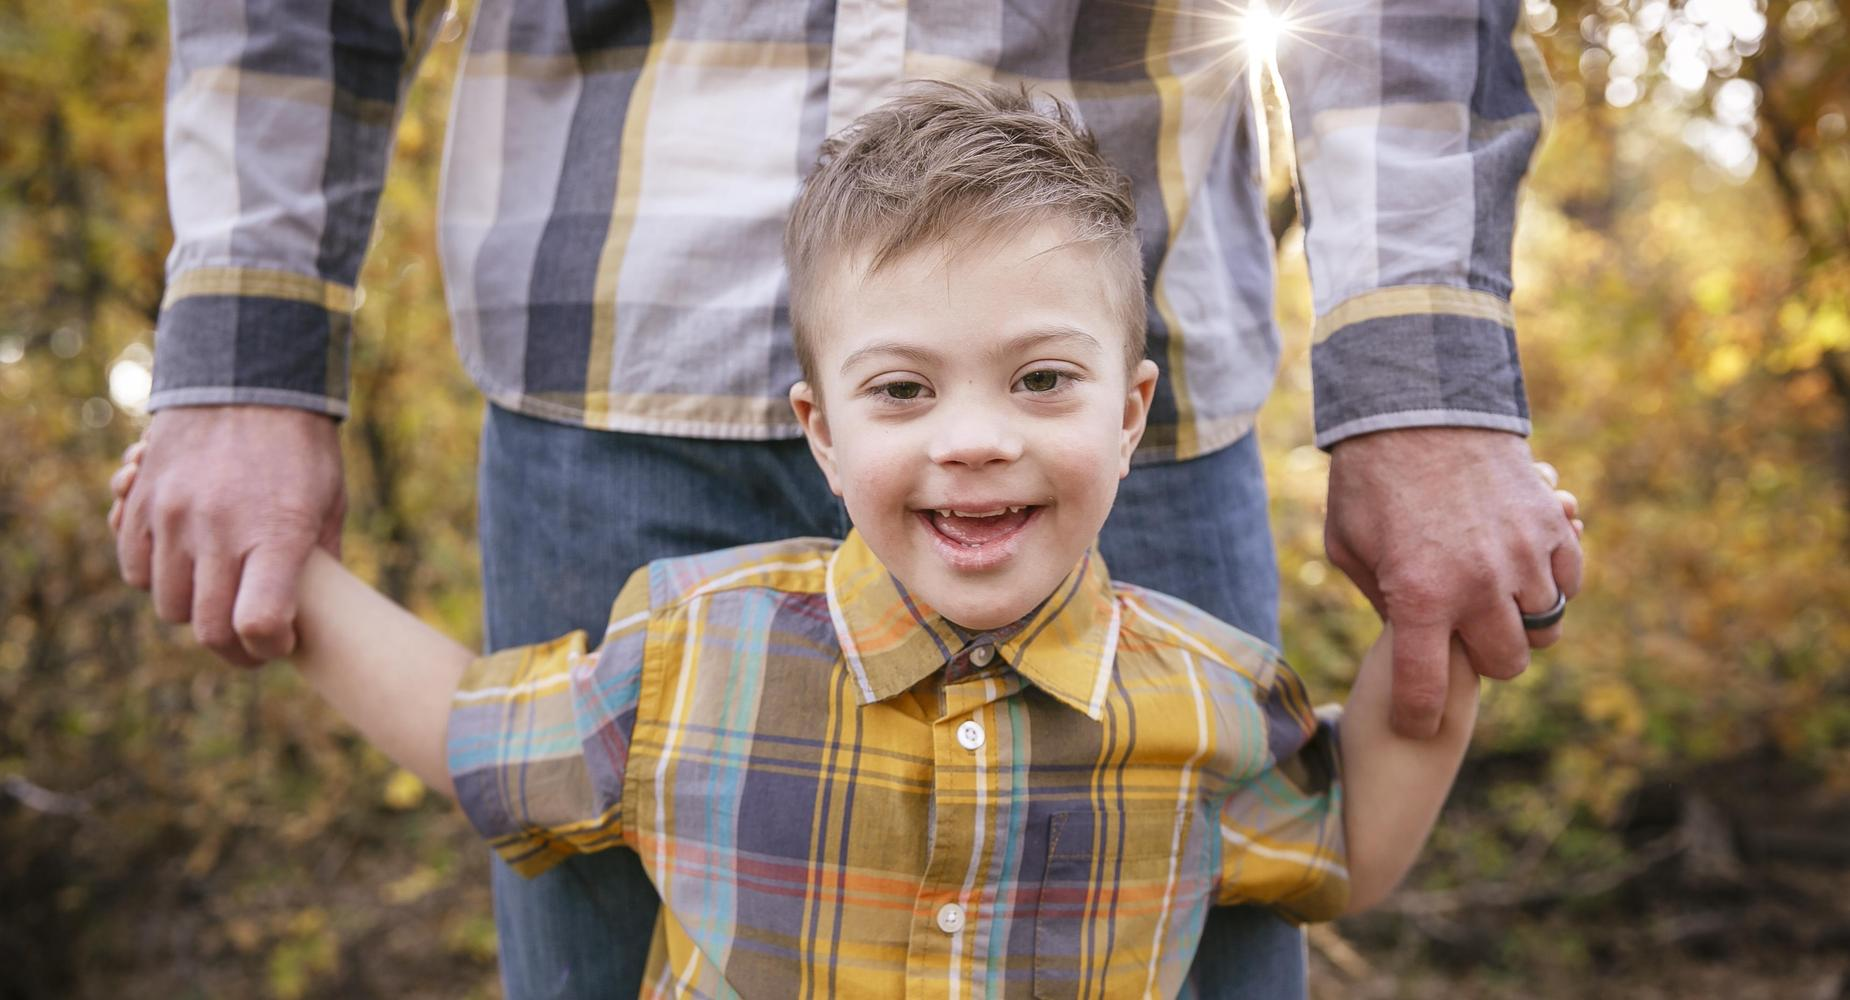 a smiling boy with down syndrome holding hands with his father.  Both are wearing matching flannel shirts